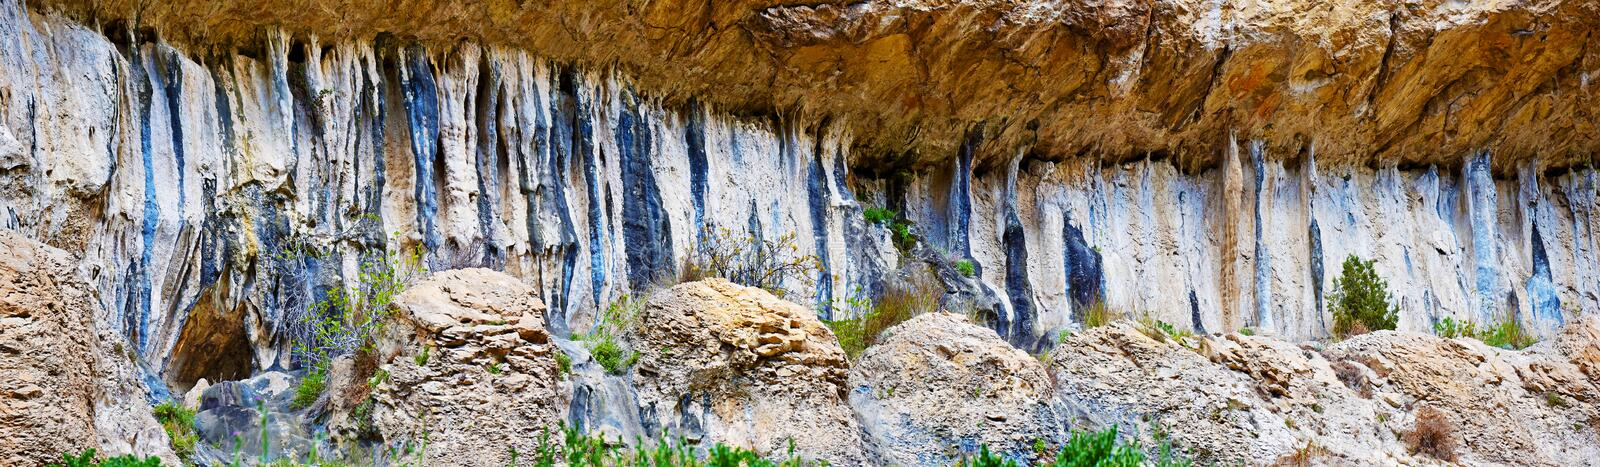 Formations from limestone rocks in walls of Lumbier Canyon stock image